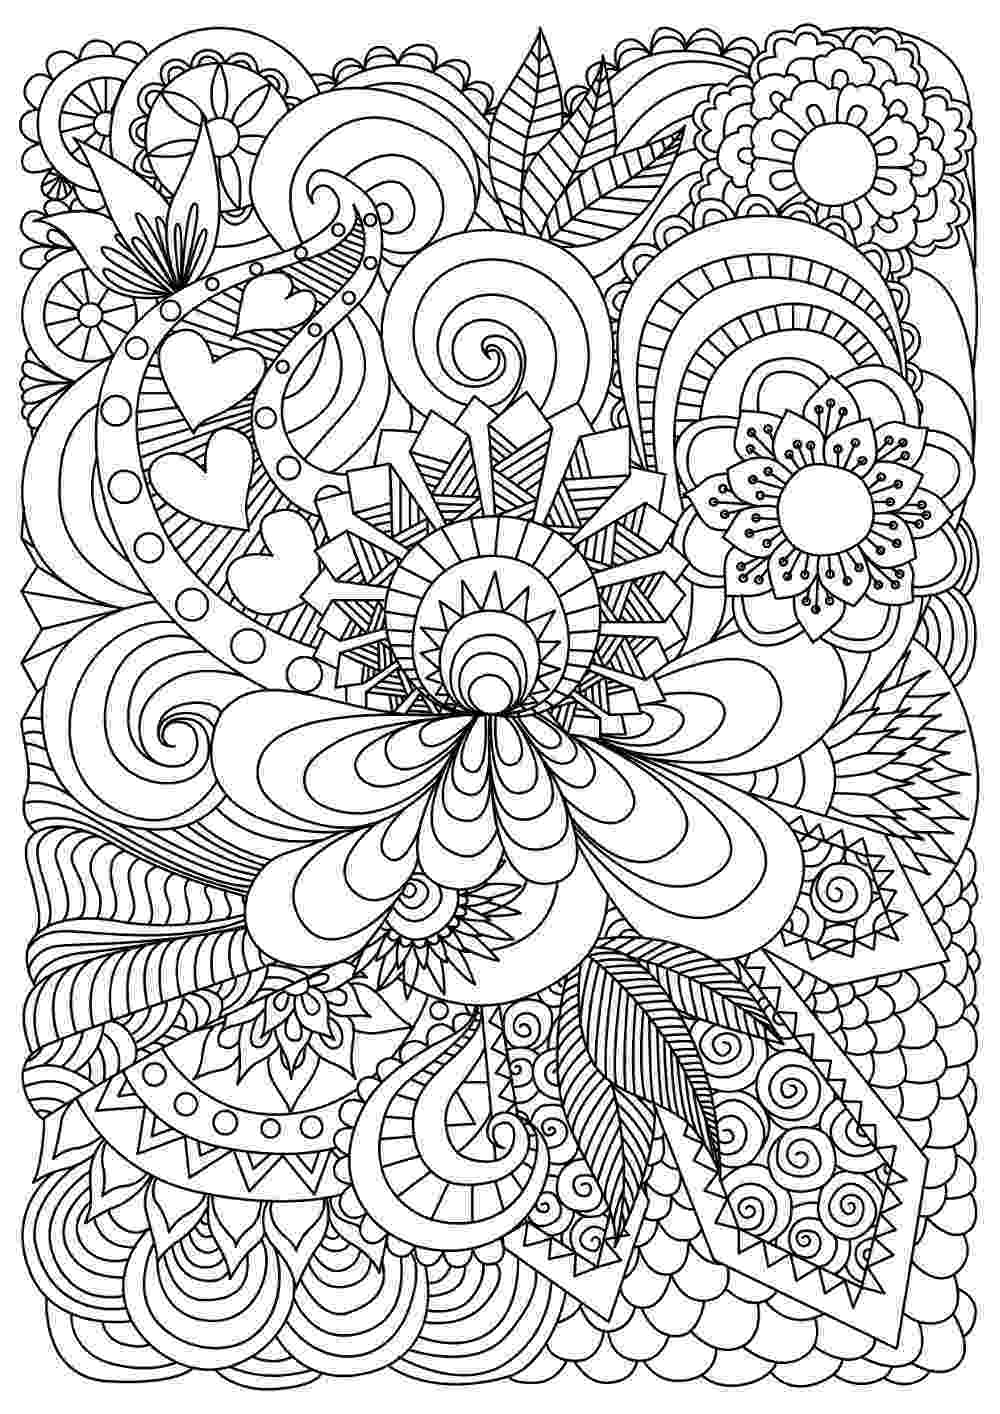 adult coloring pages online detailed coloring pages to download and print for free online coloring adult pages